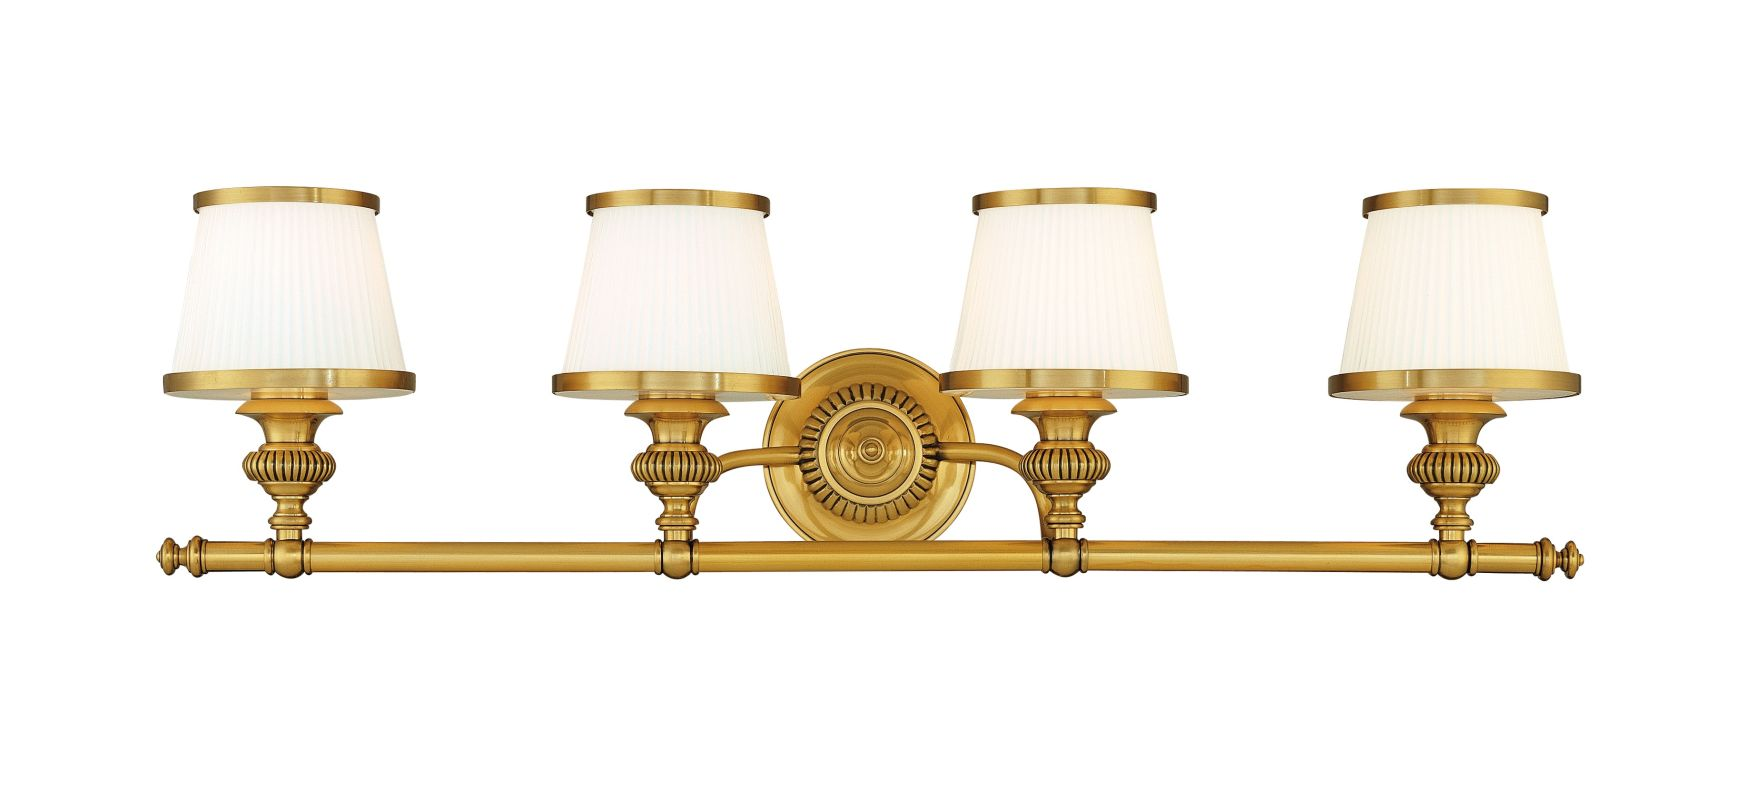 Hudson Valley Lighting 2004 Four Light Wall Sconce from the Milton